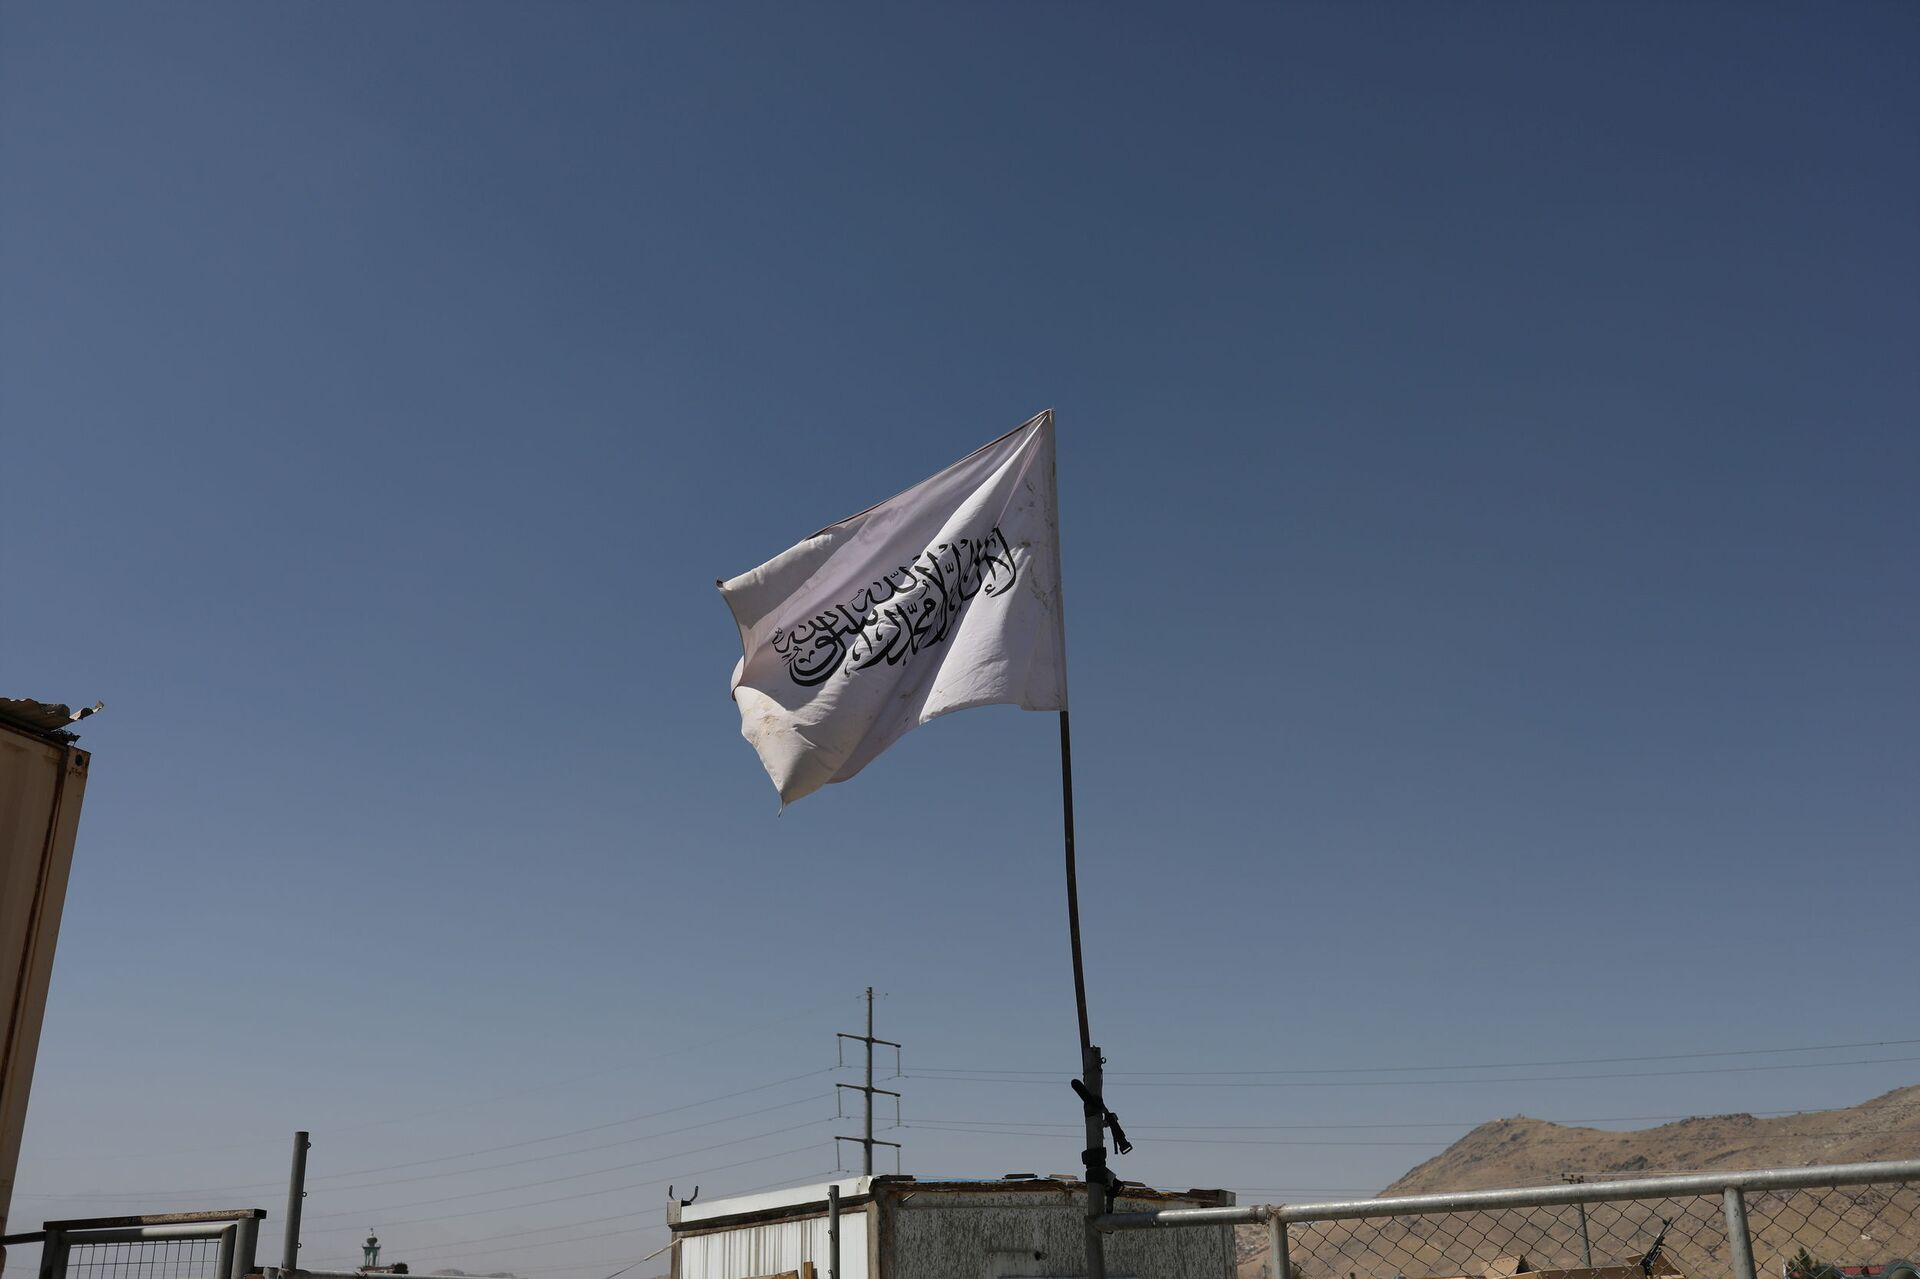 The flag of the Islamic Emirate of Afghanistan (Taliban) is raised at the military airfield in Kabul, Afghanistan, September 5, 2021. - Sputnik International, 1920, 14.09.2021